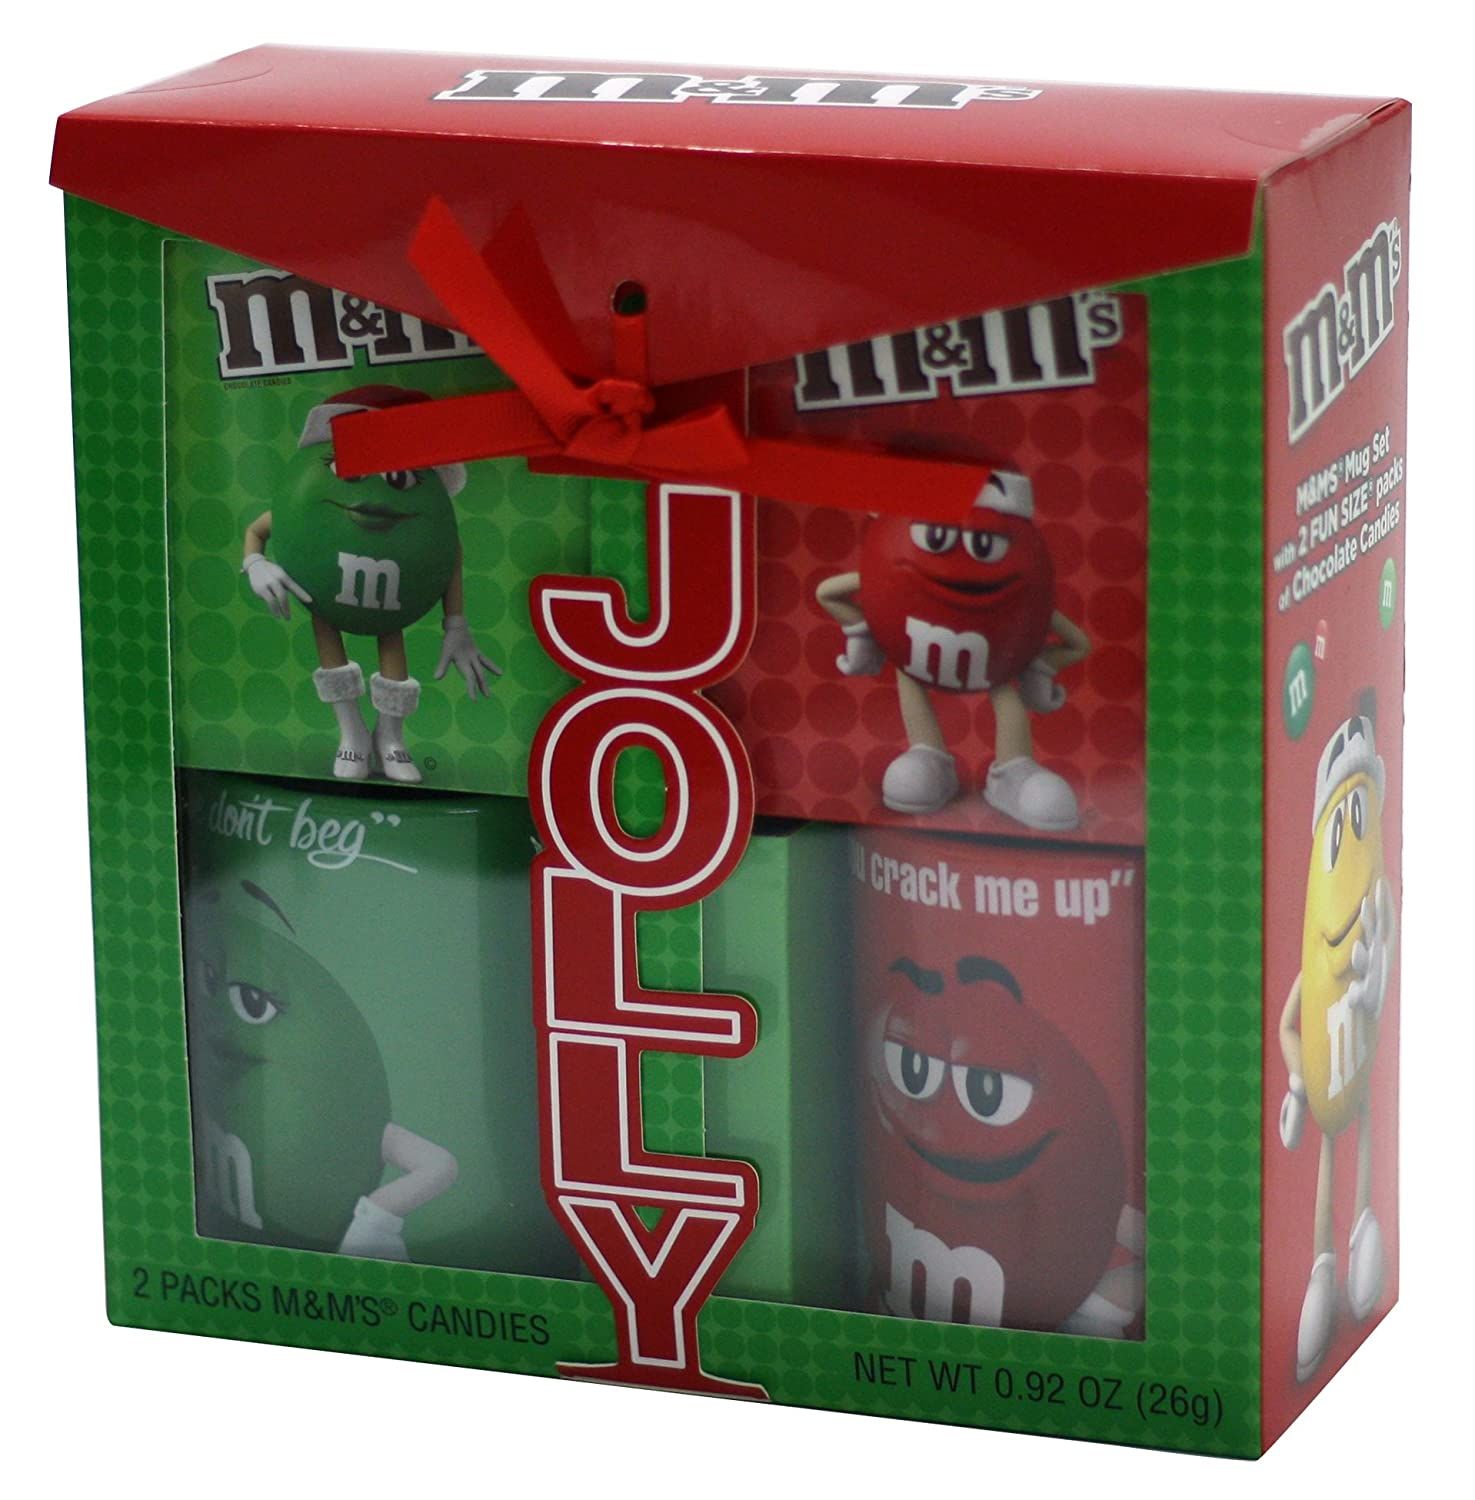 Amazon.com : Frankford Candy Company M&M's 2 Pack Mug Gift Set, 32 Ounce : Grocery & Gourmet Food